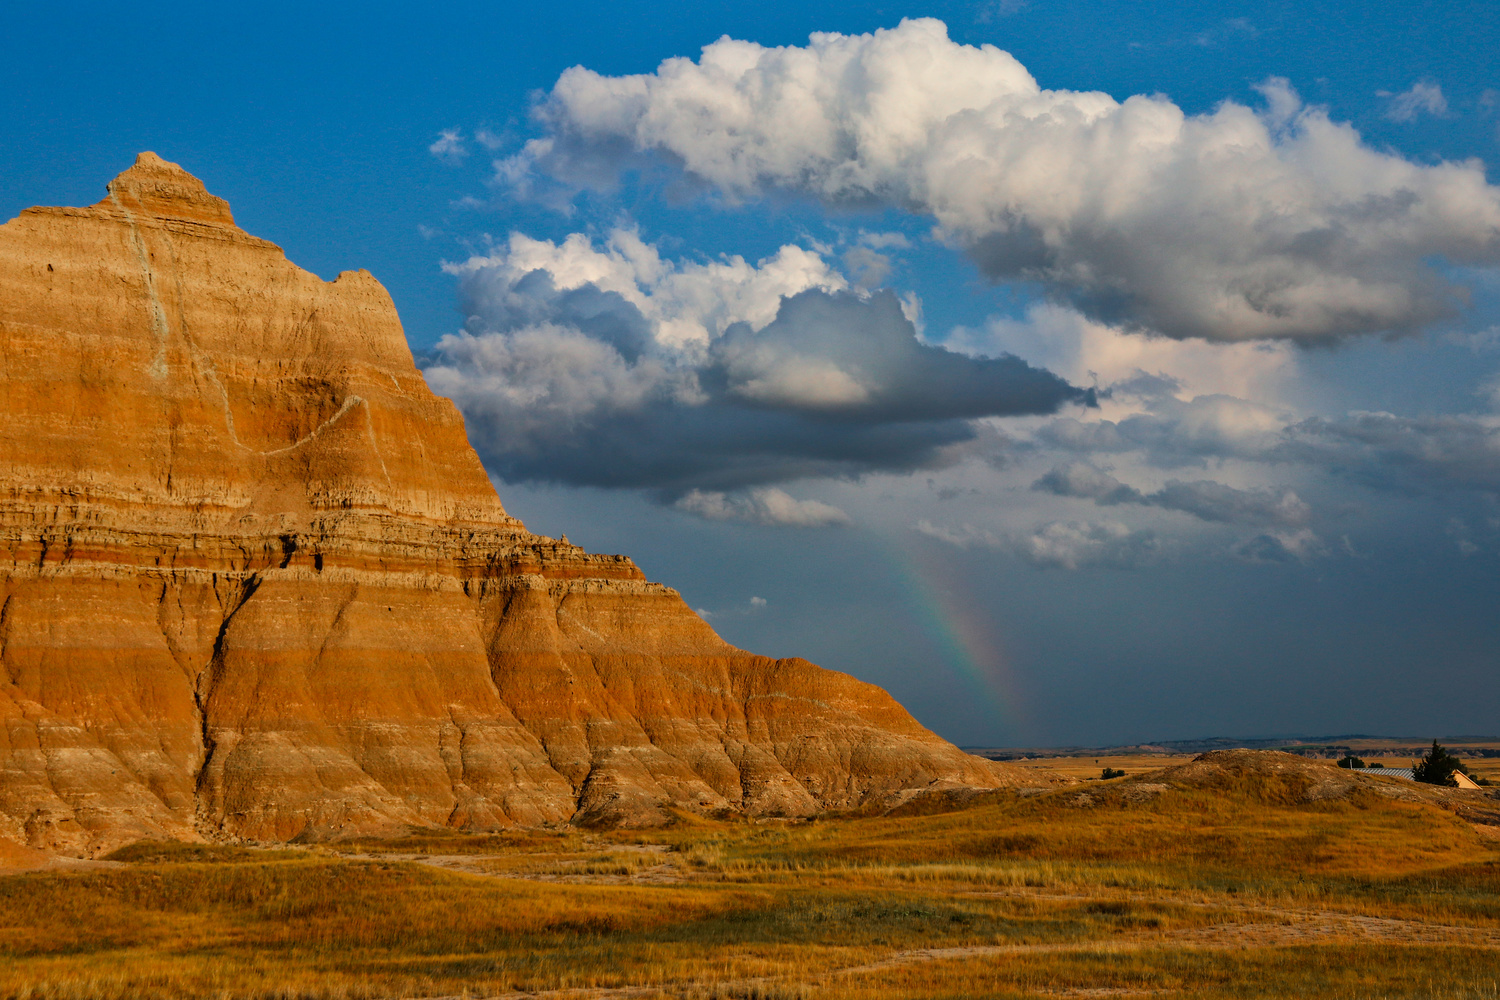 Rainbow-Badlands National Park by J. Daniel Jenkins